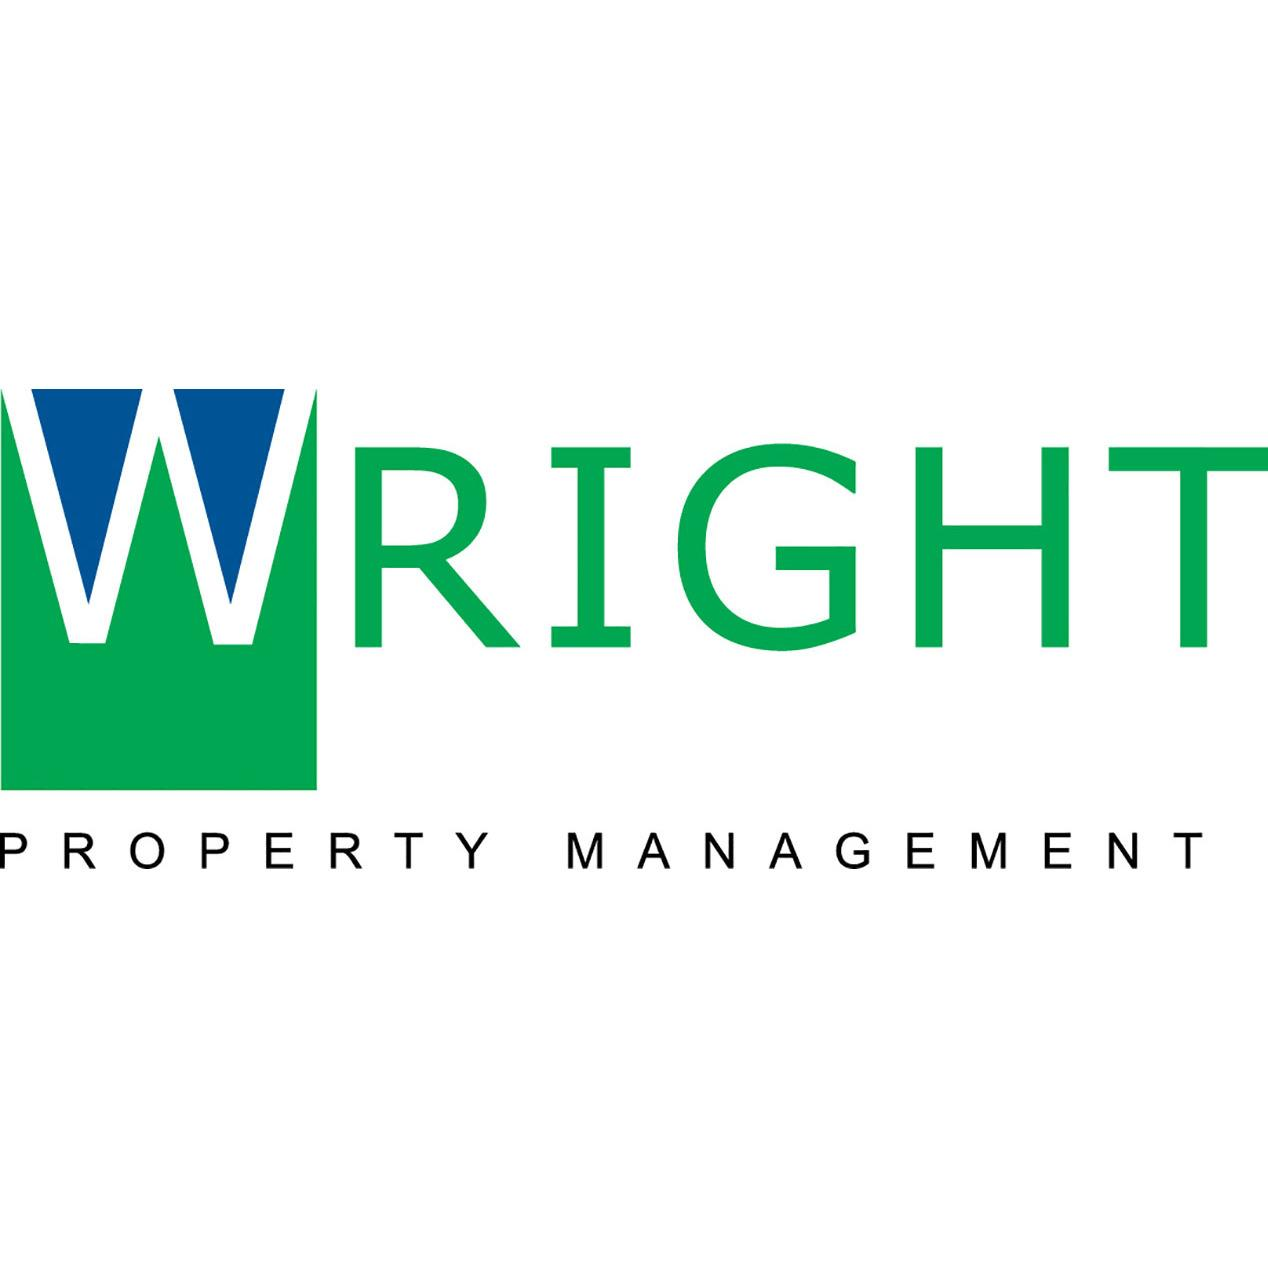 Tams Near Me >> Wright Property Management Coupons near me in MEMPHIS | 8coupons